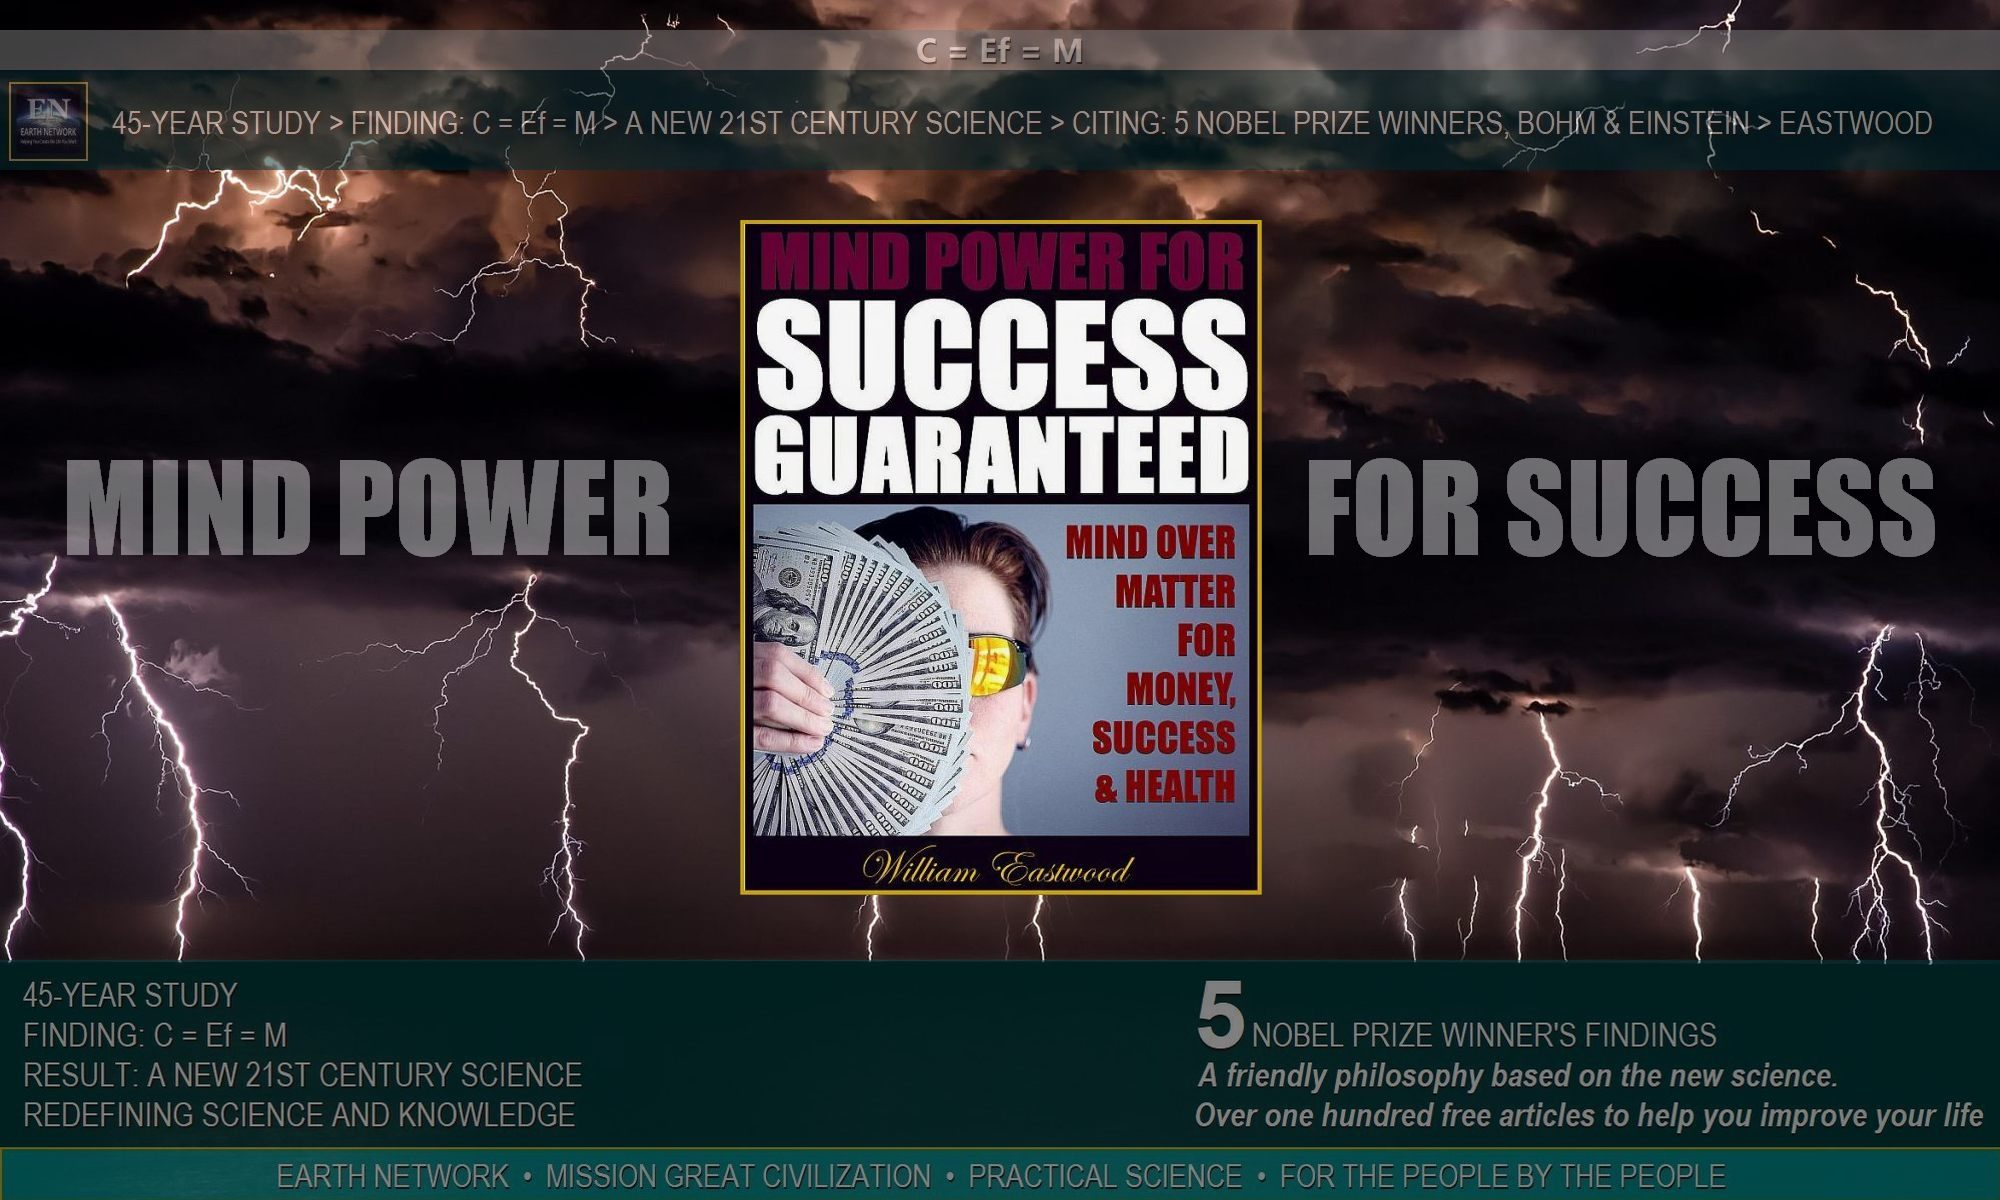 Thunder depicts using subconscious mind power to manifest success and materialize money.